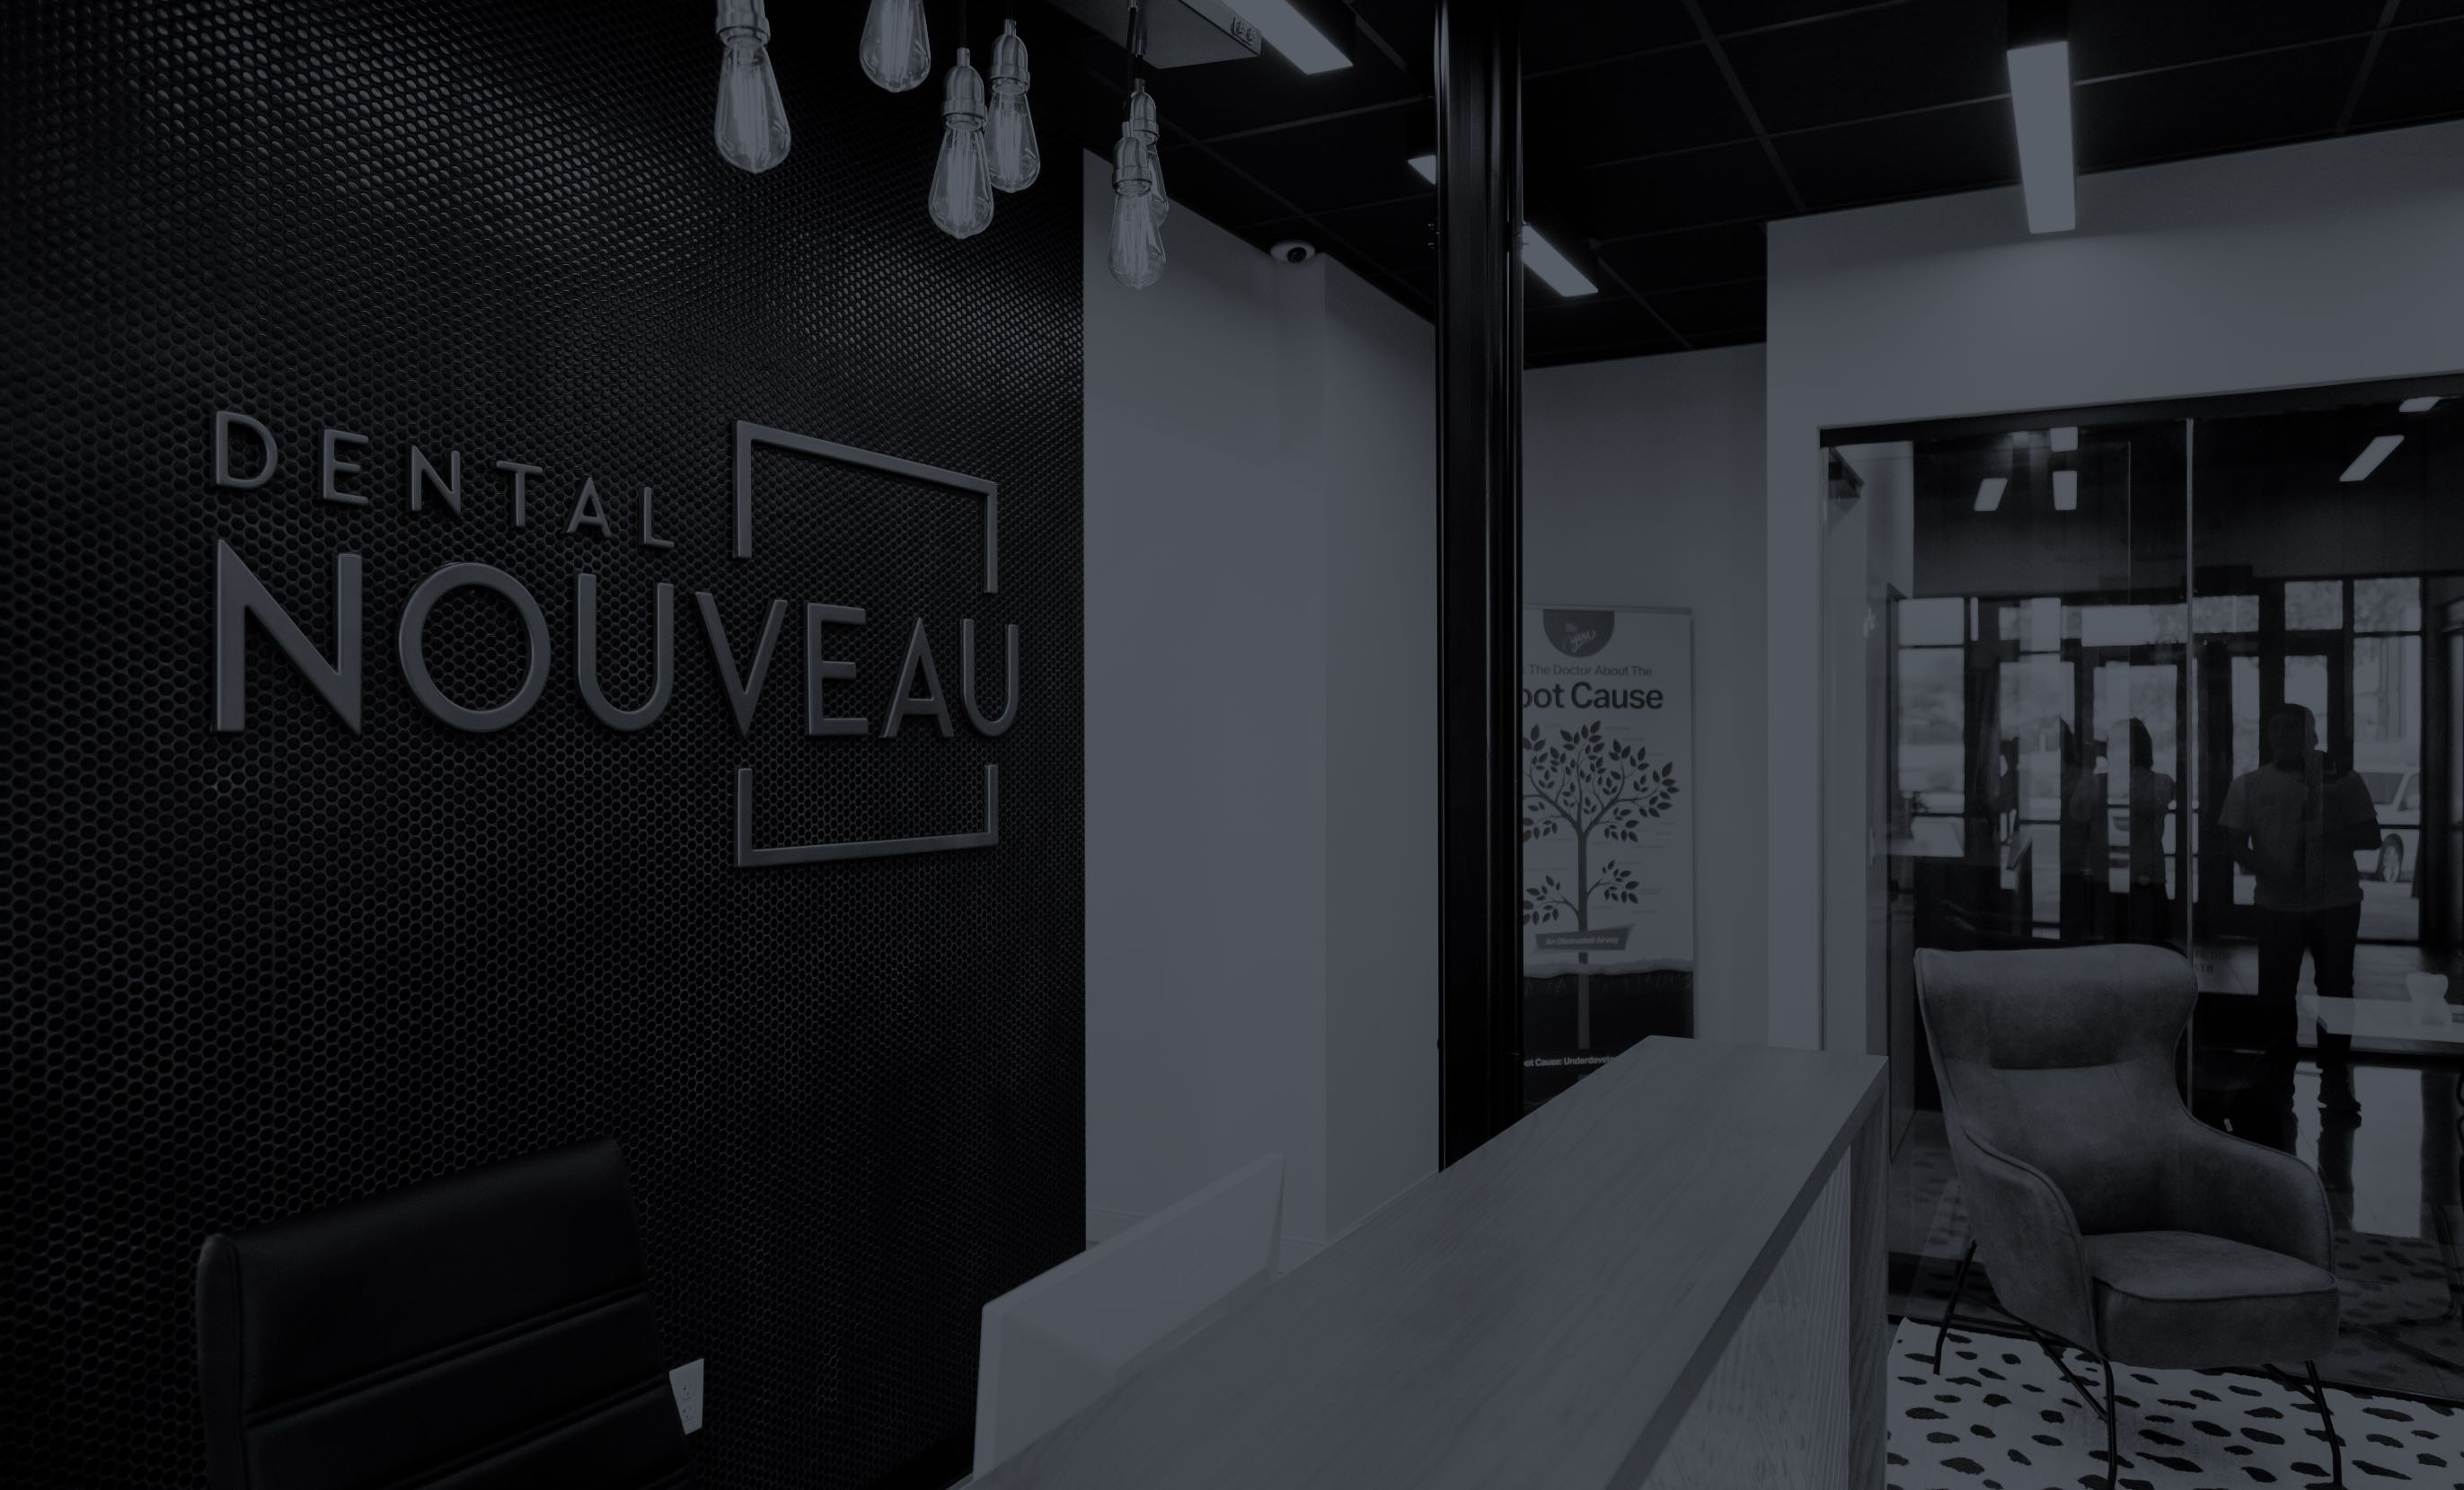 Photo of the lobby at Dental Nouveau in New Braunfels, Texas